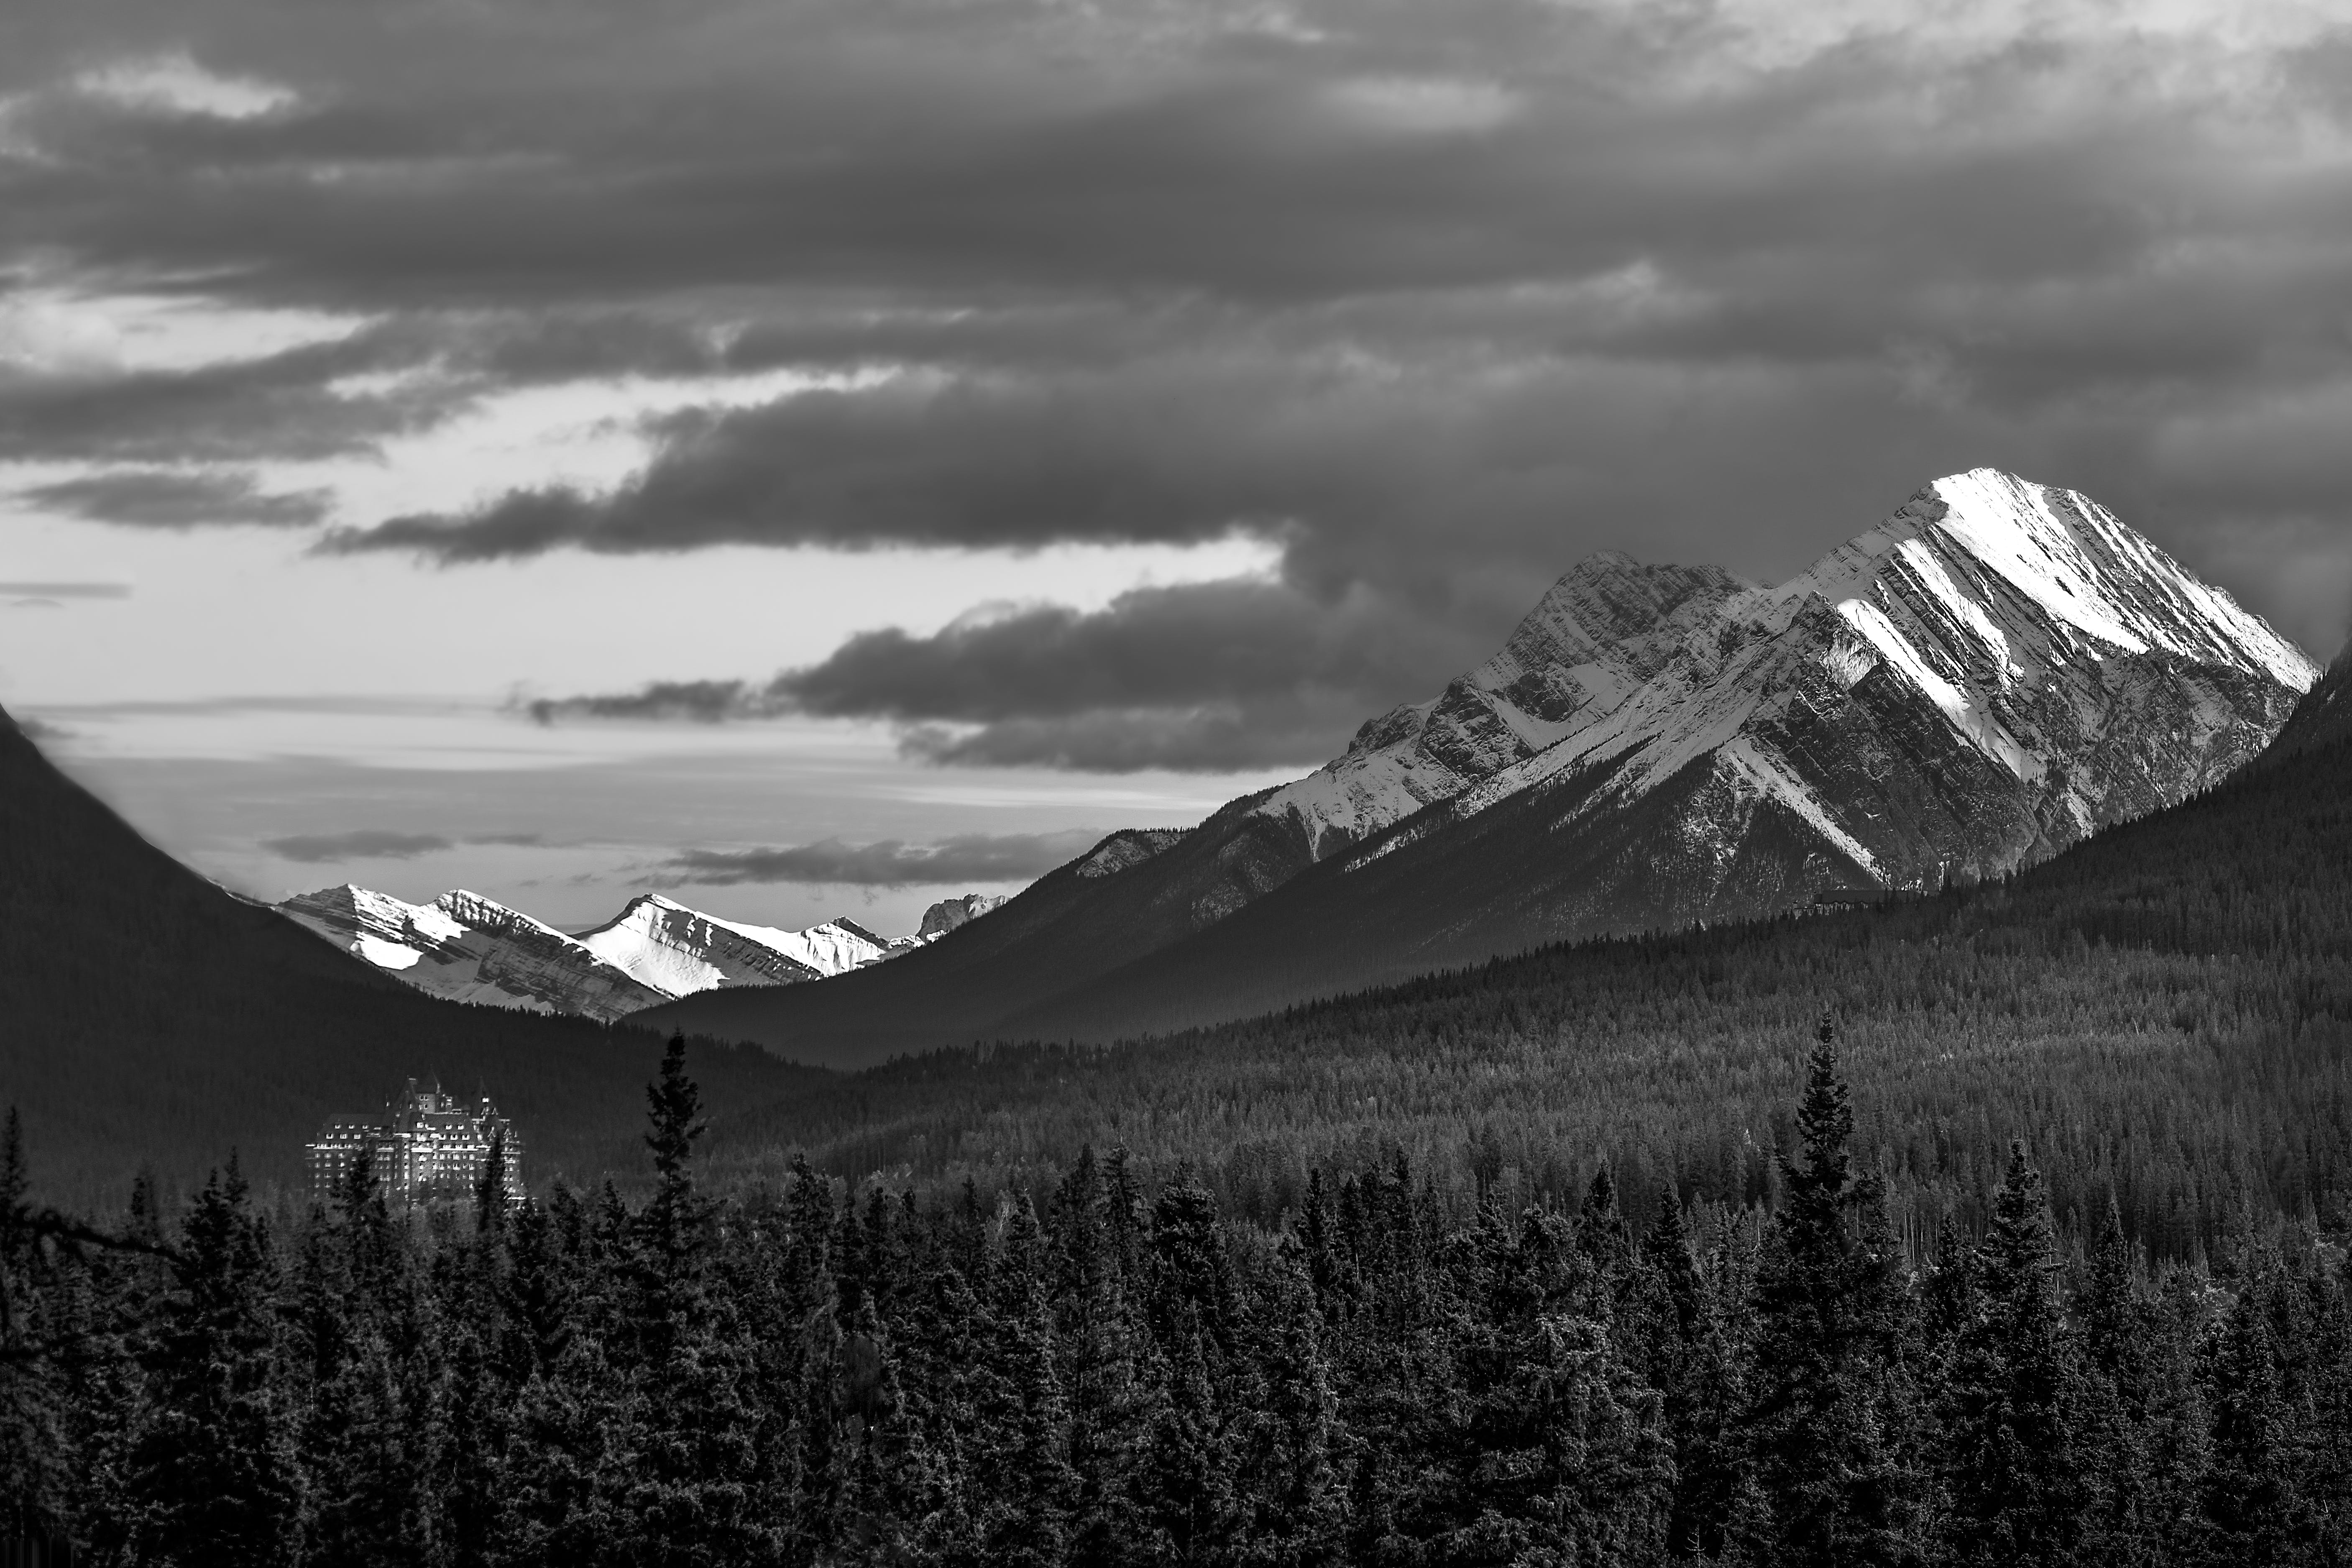 Grayscale Photography Of Snow Covered Mountain Under Cloudy Sky